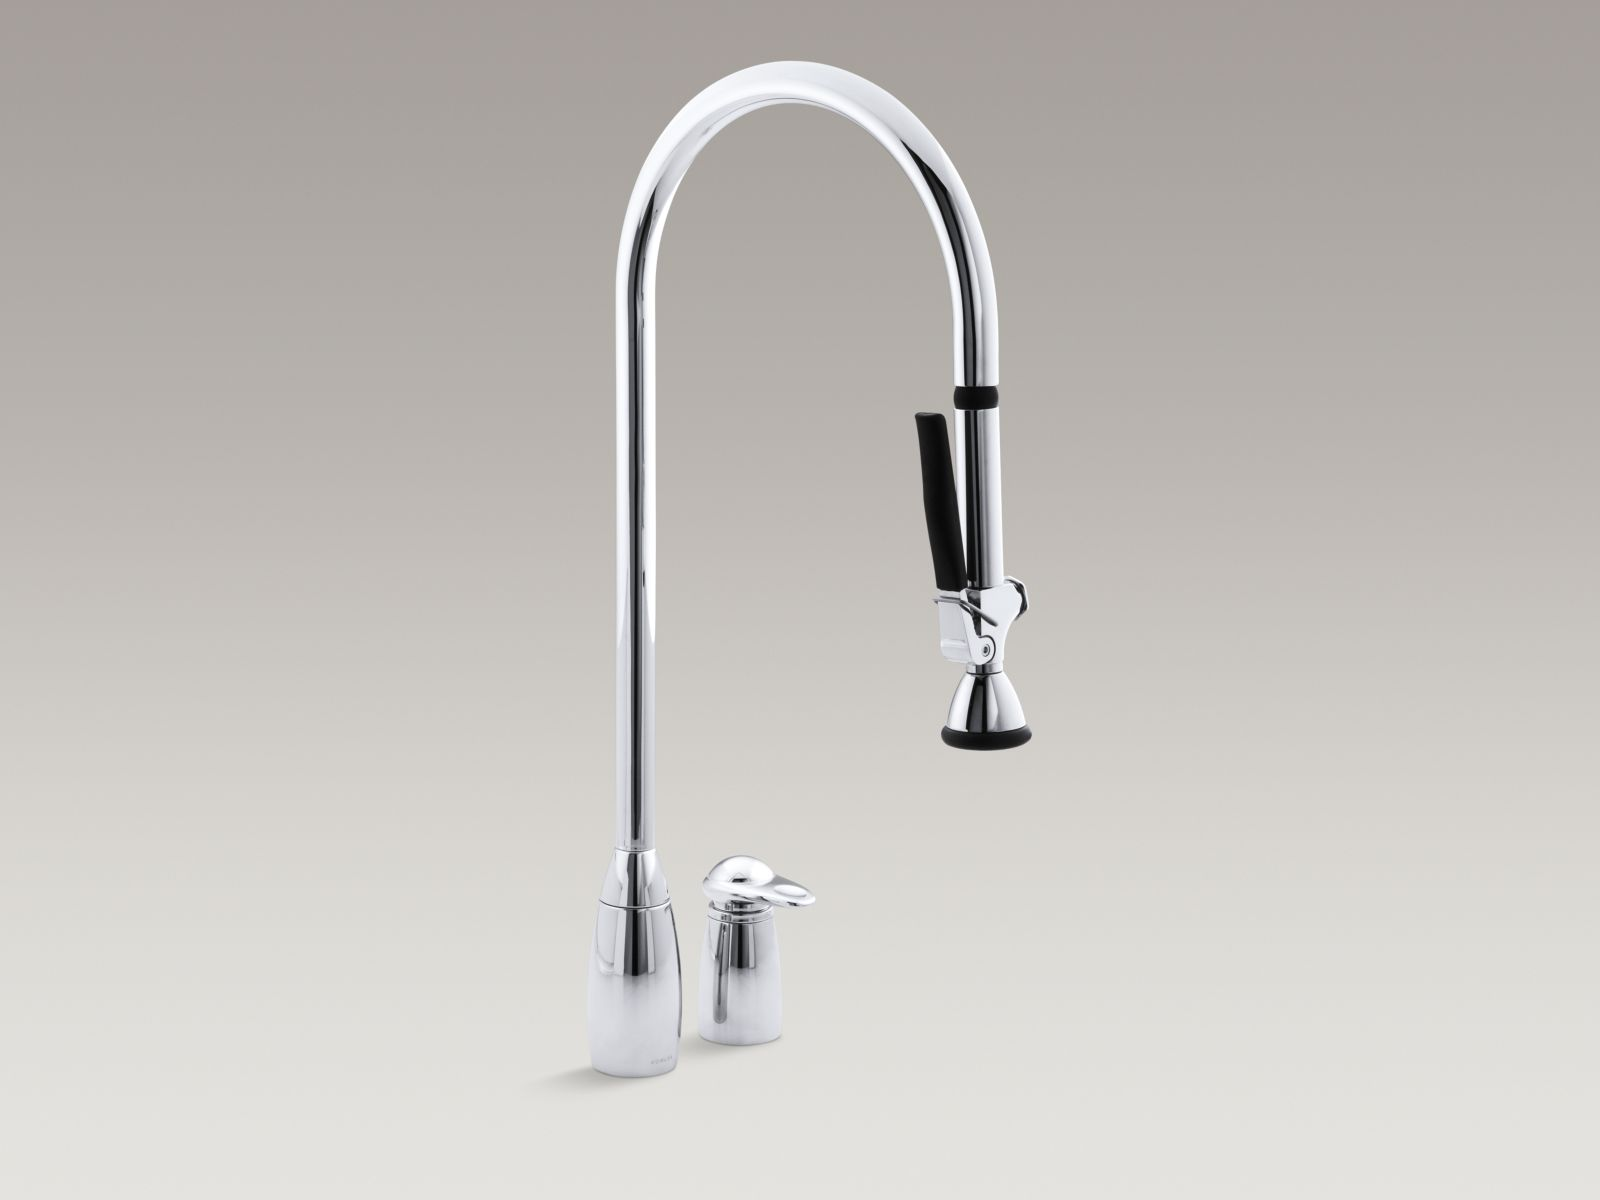 pull with kitchen hands selectronic b faucet beale faucets kitchens down technology touchless free